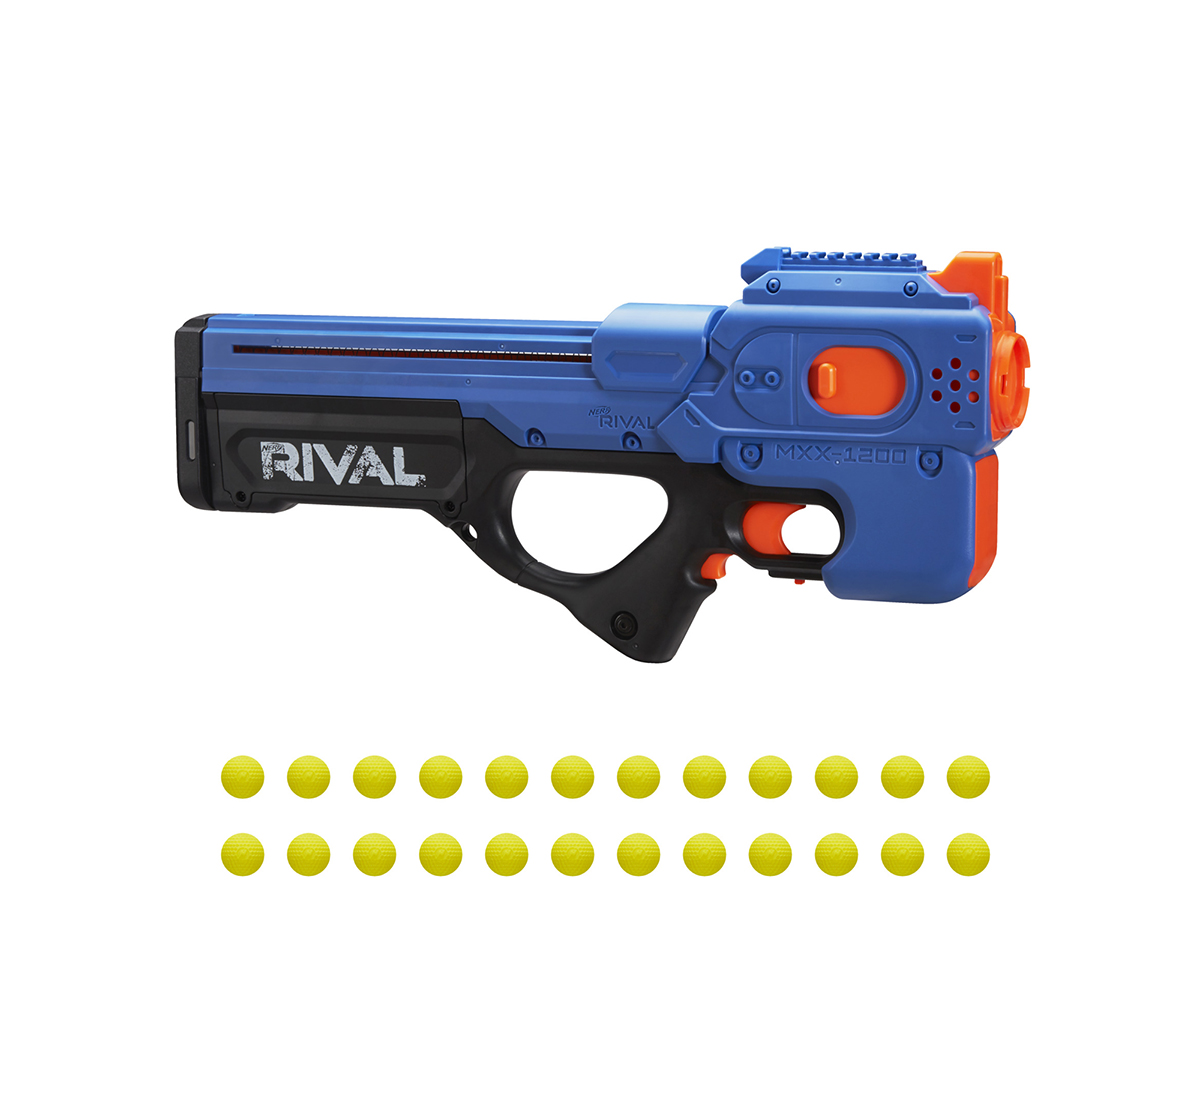 Nerf | Nerf Rival Charger MXX-1200 Blaster Toy Gun Blasters for Kids age 14Y+